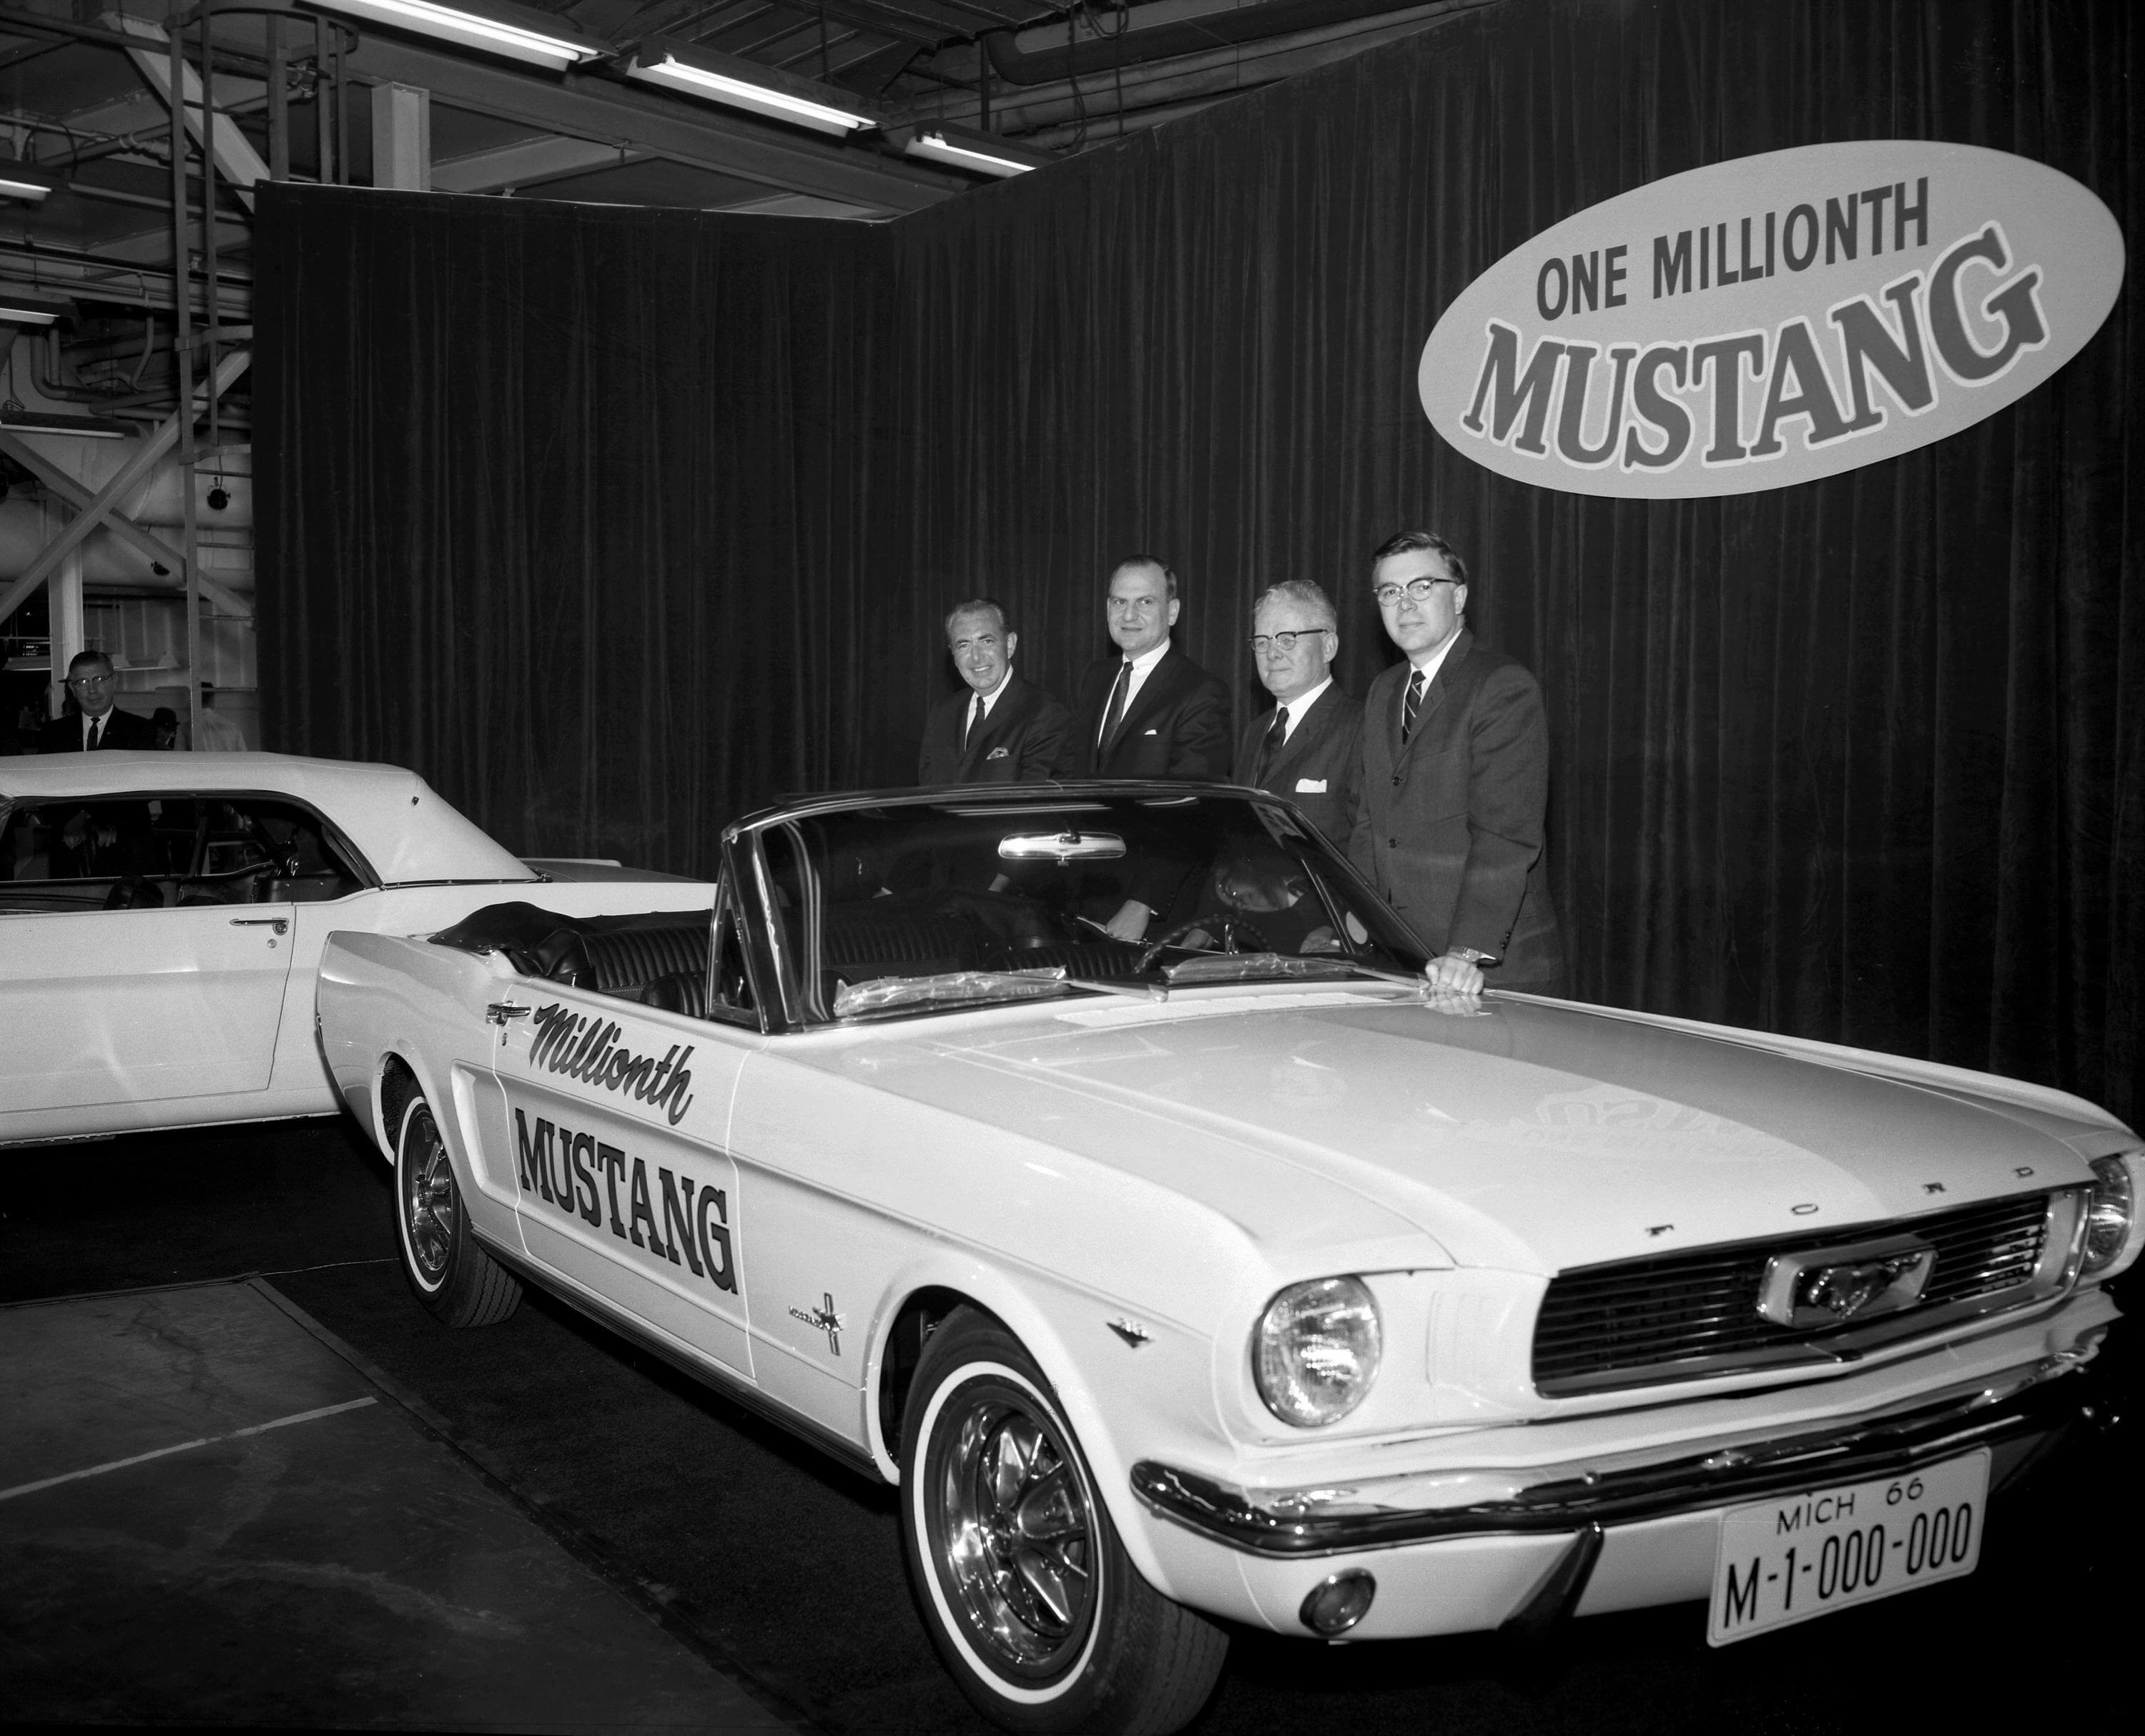 1966-Ford-Mustang-conv-Millionth-Mustang